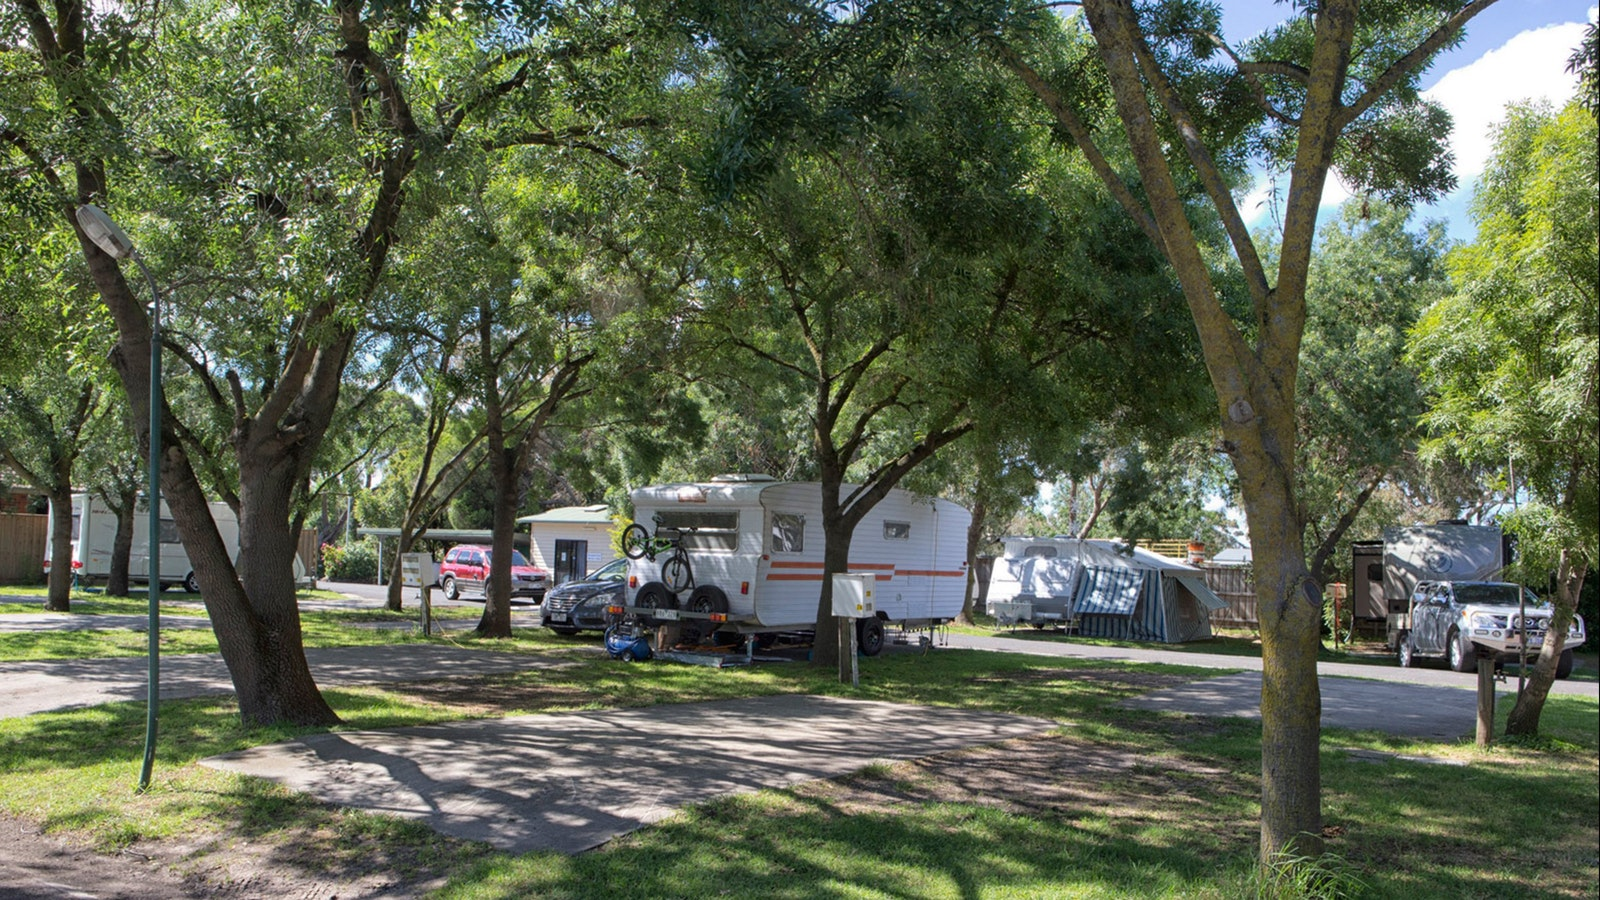 BIG4 Dandenong Tourist Park Caravan and Camping Ground Self-Contained Accommodation Shady Sites